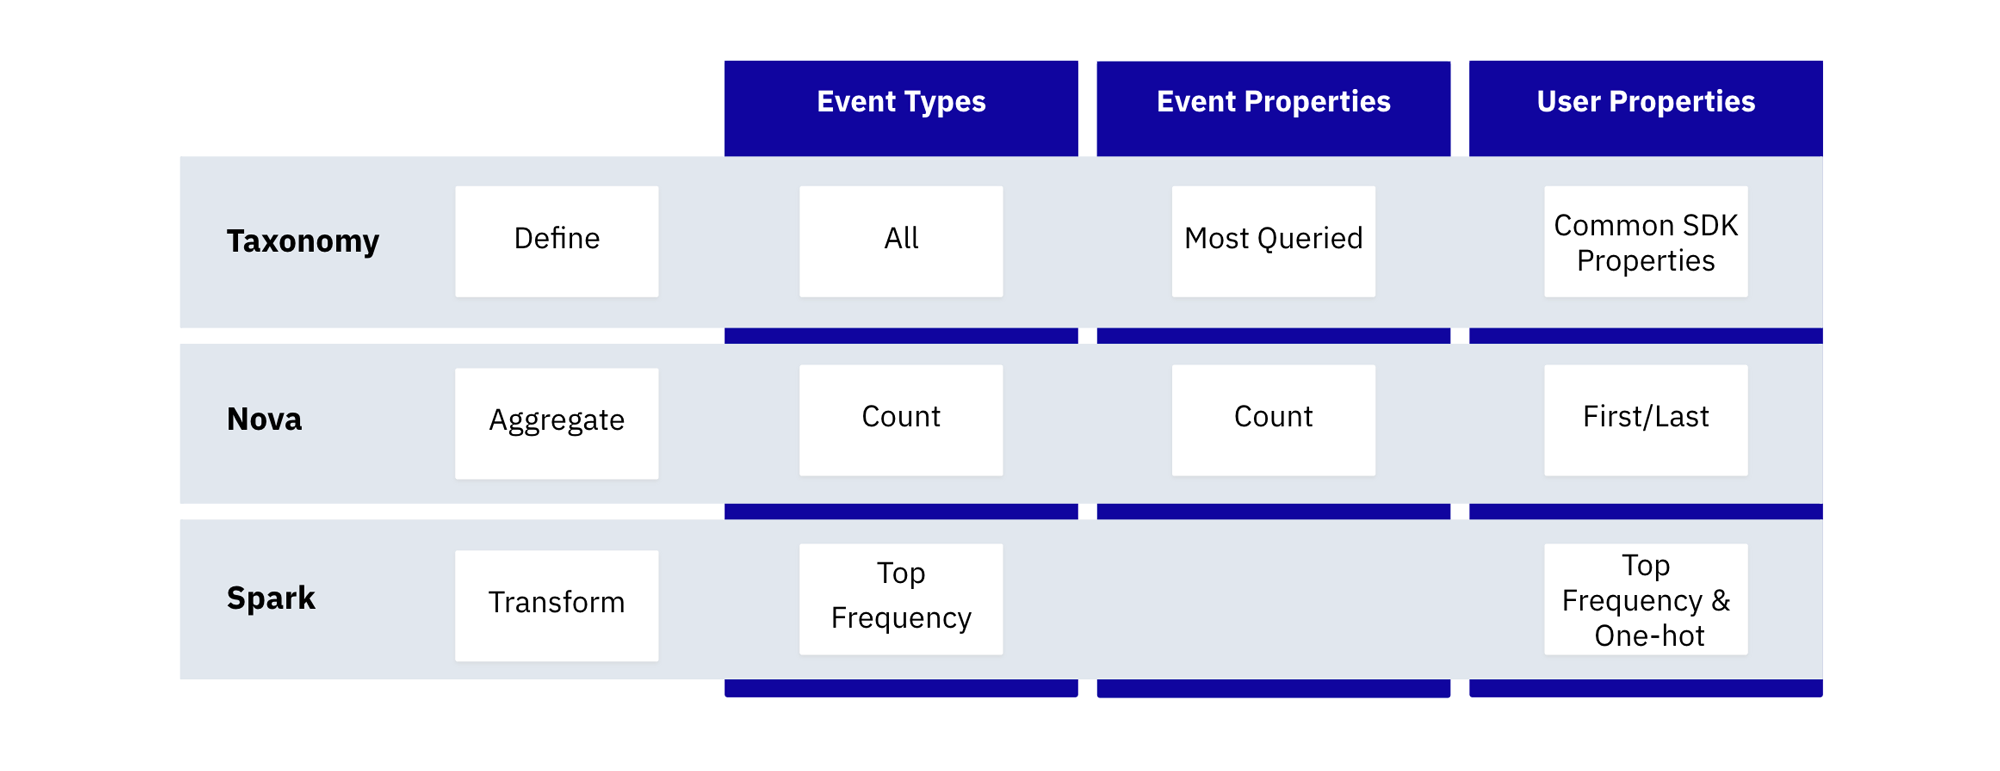 Event types and user properties